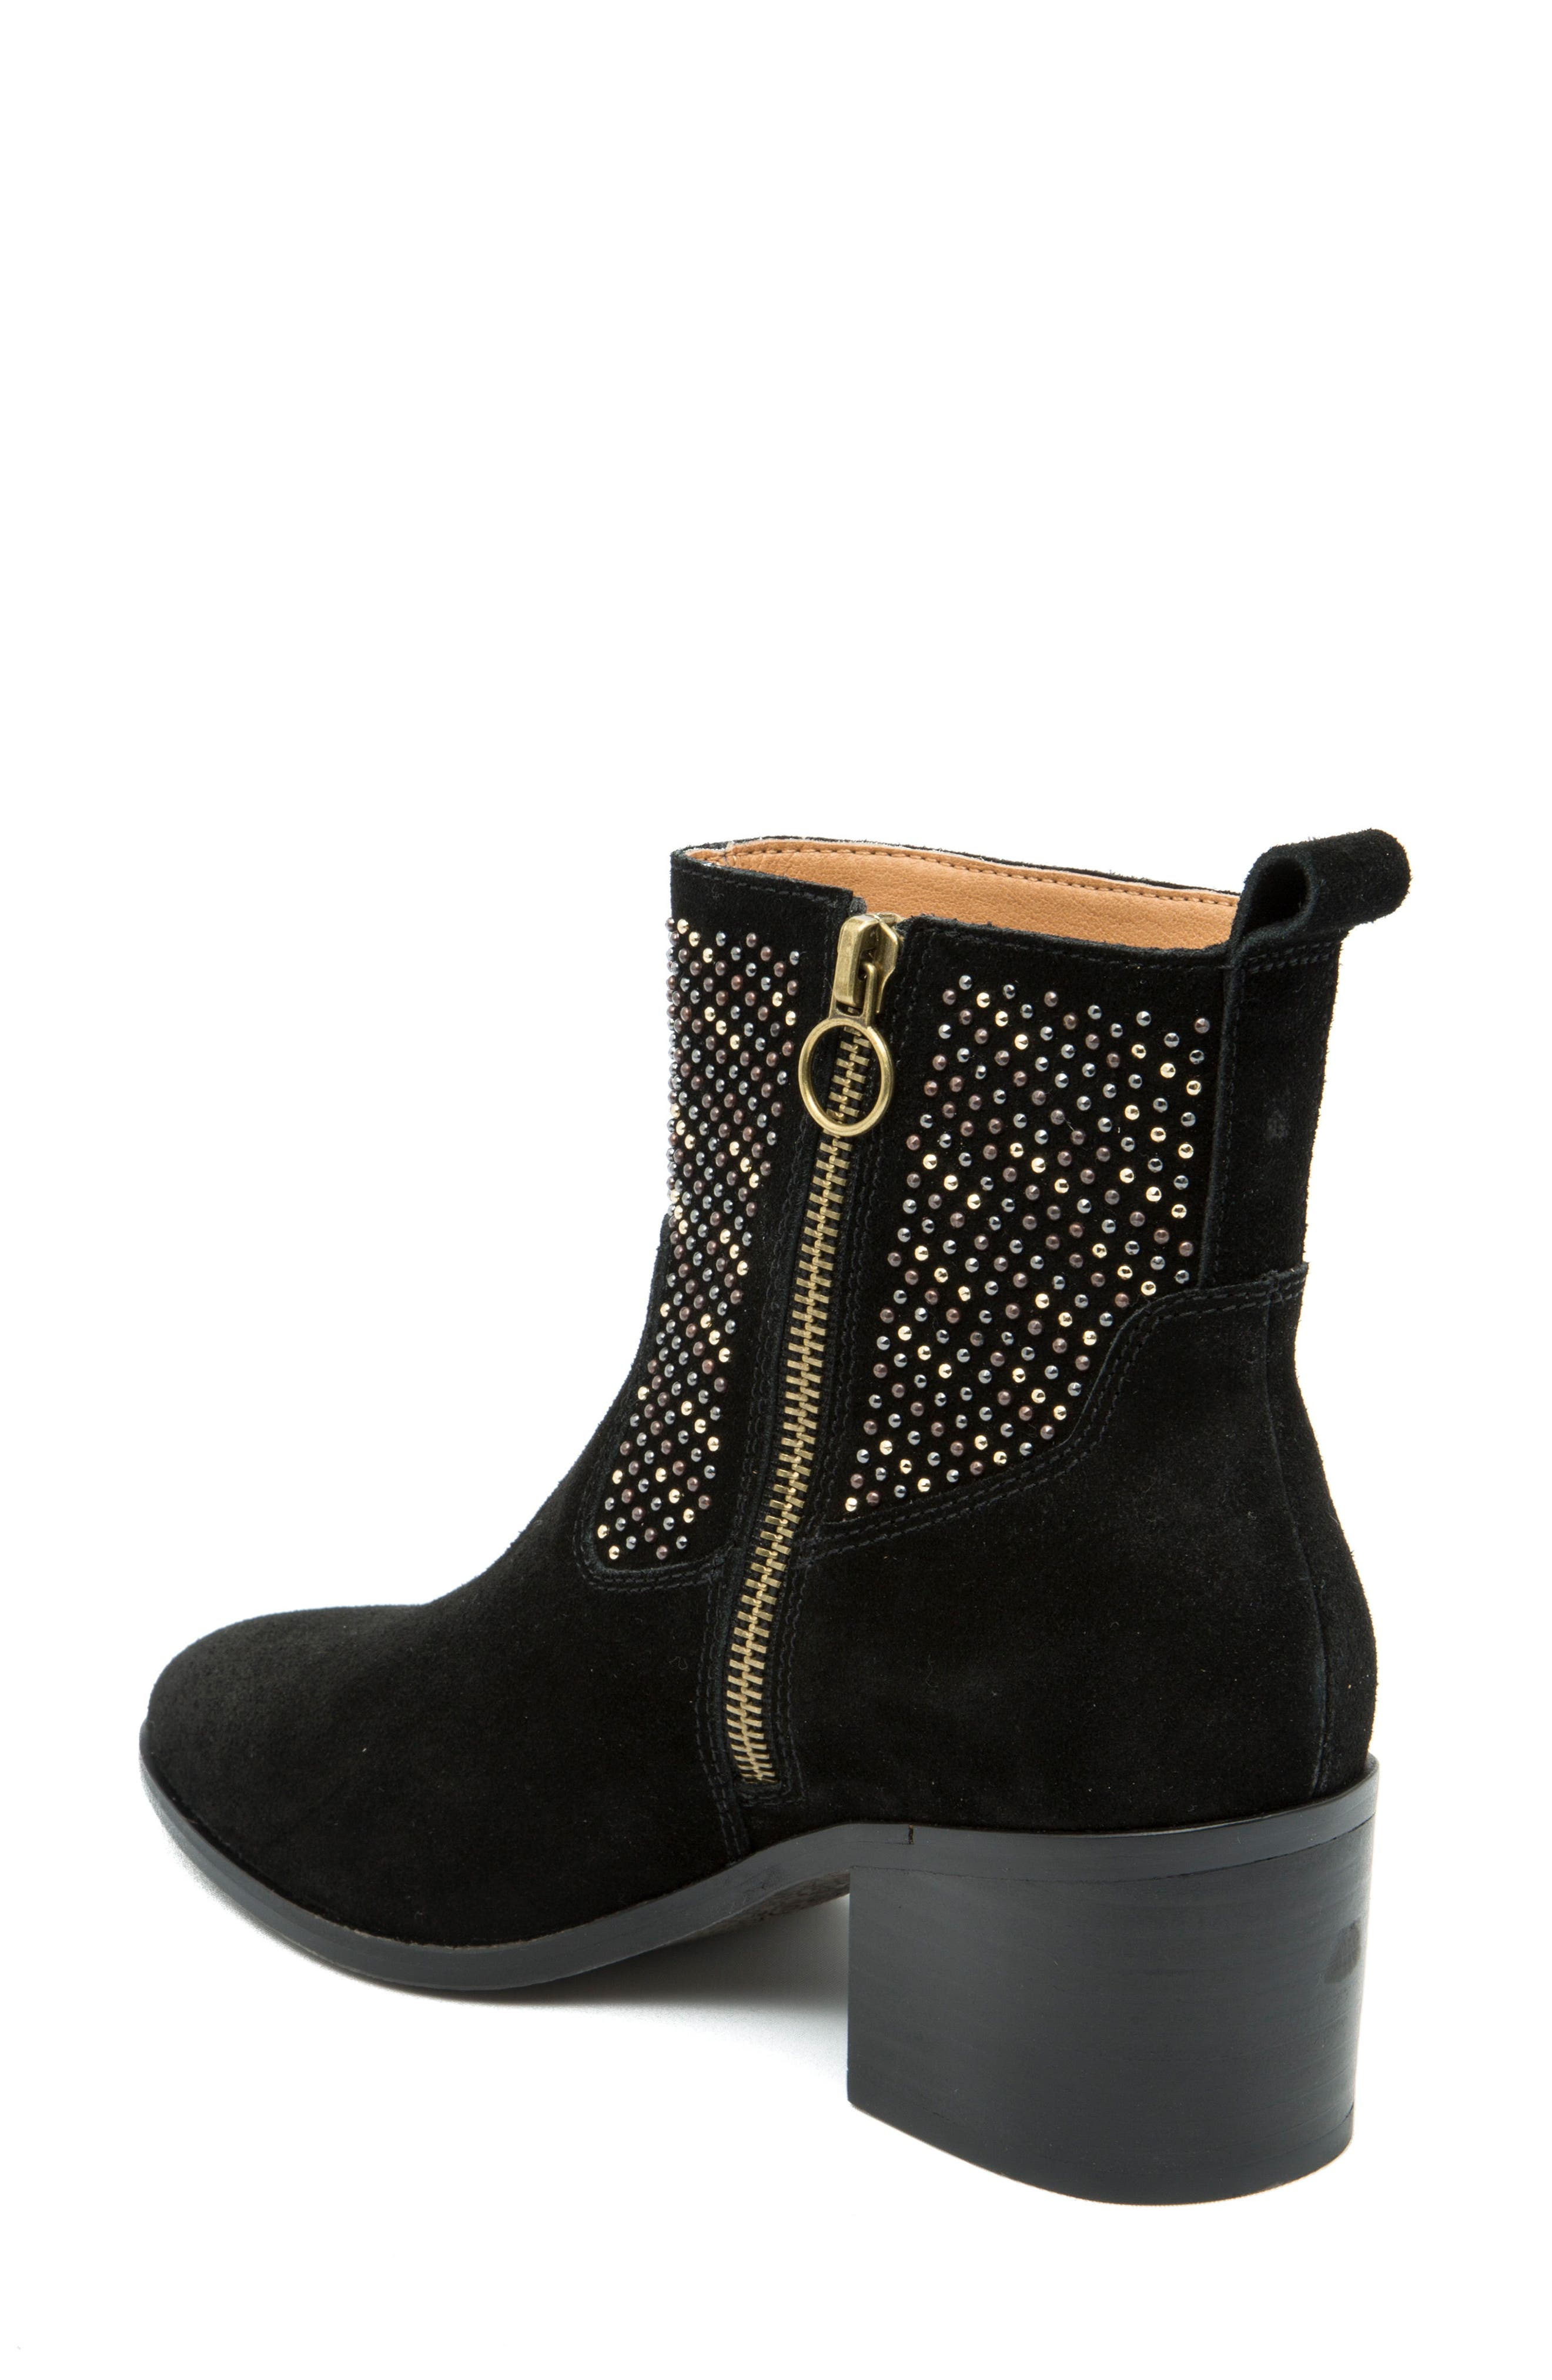 Dosa Studded Bootie,                             Alternate thumbnail 2, color,